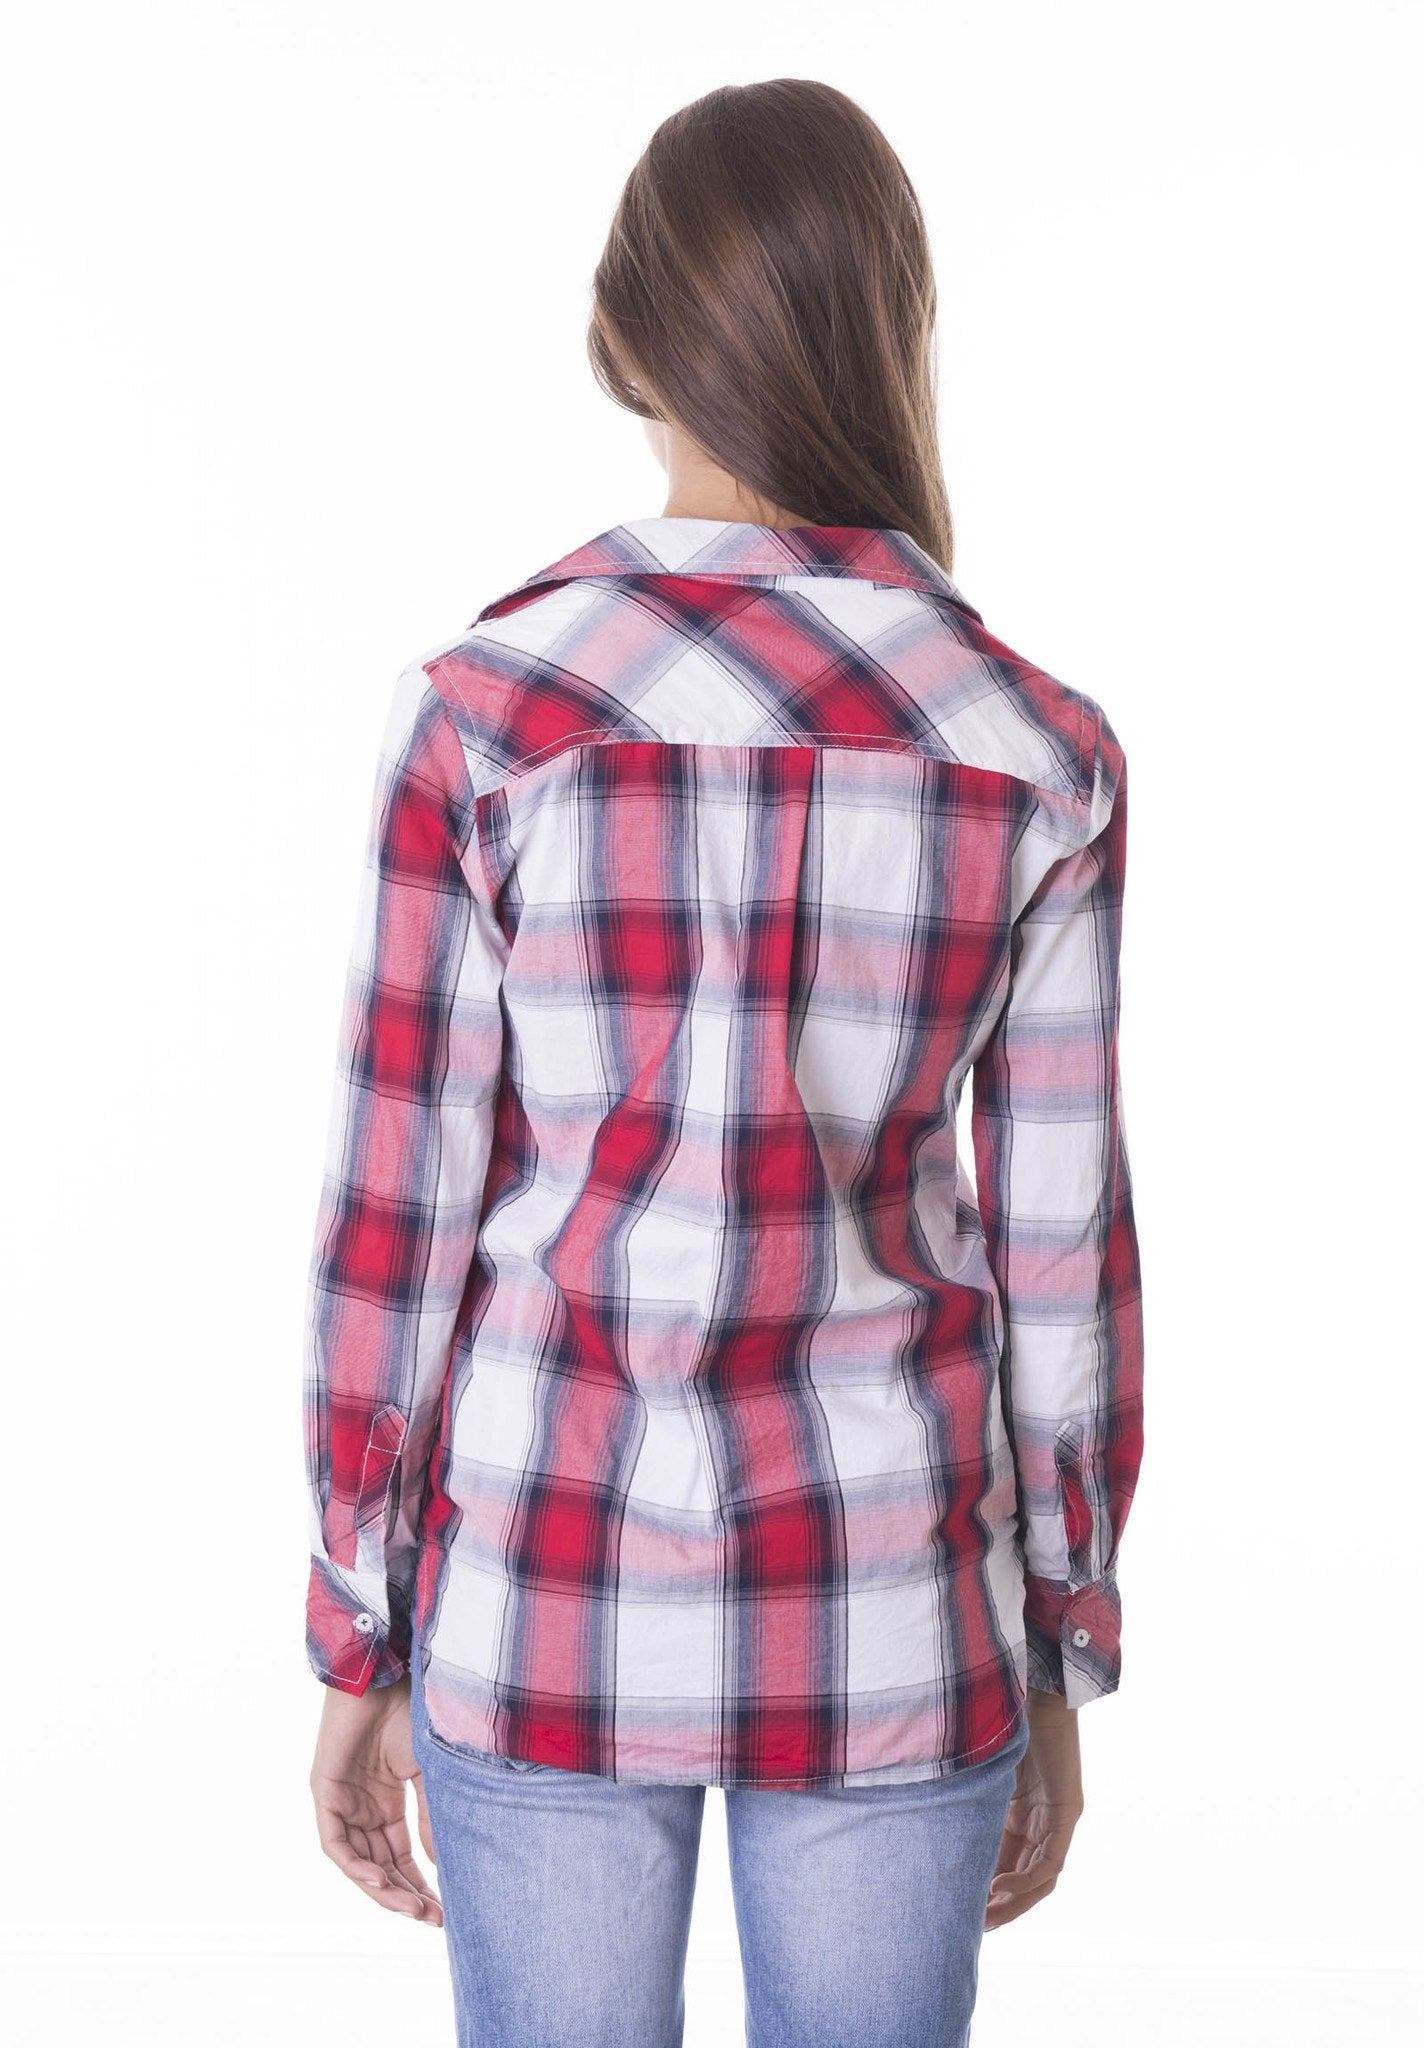 Ruby, Red & White Tartan Crushed Plaid shirt